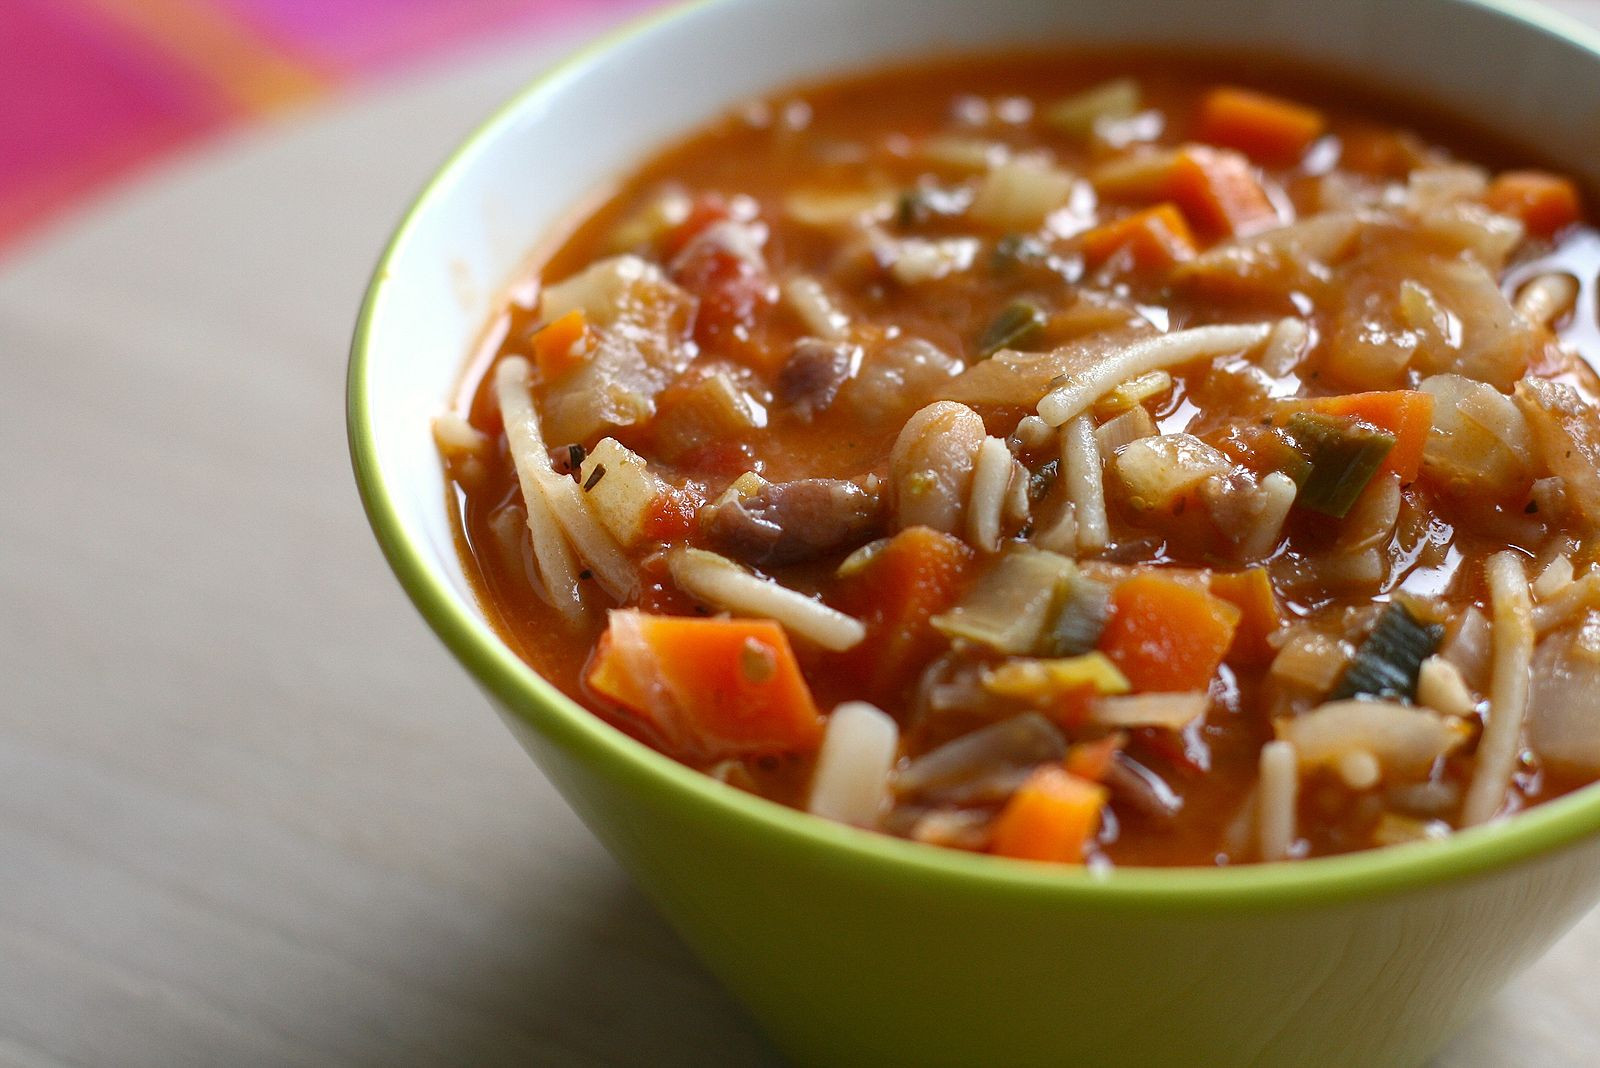 Italian Minestrone Soup with Amish sausage